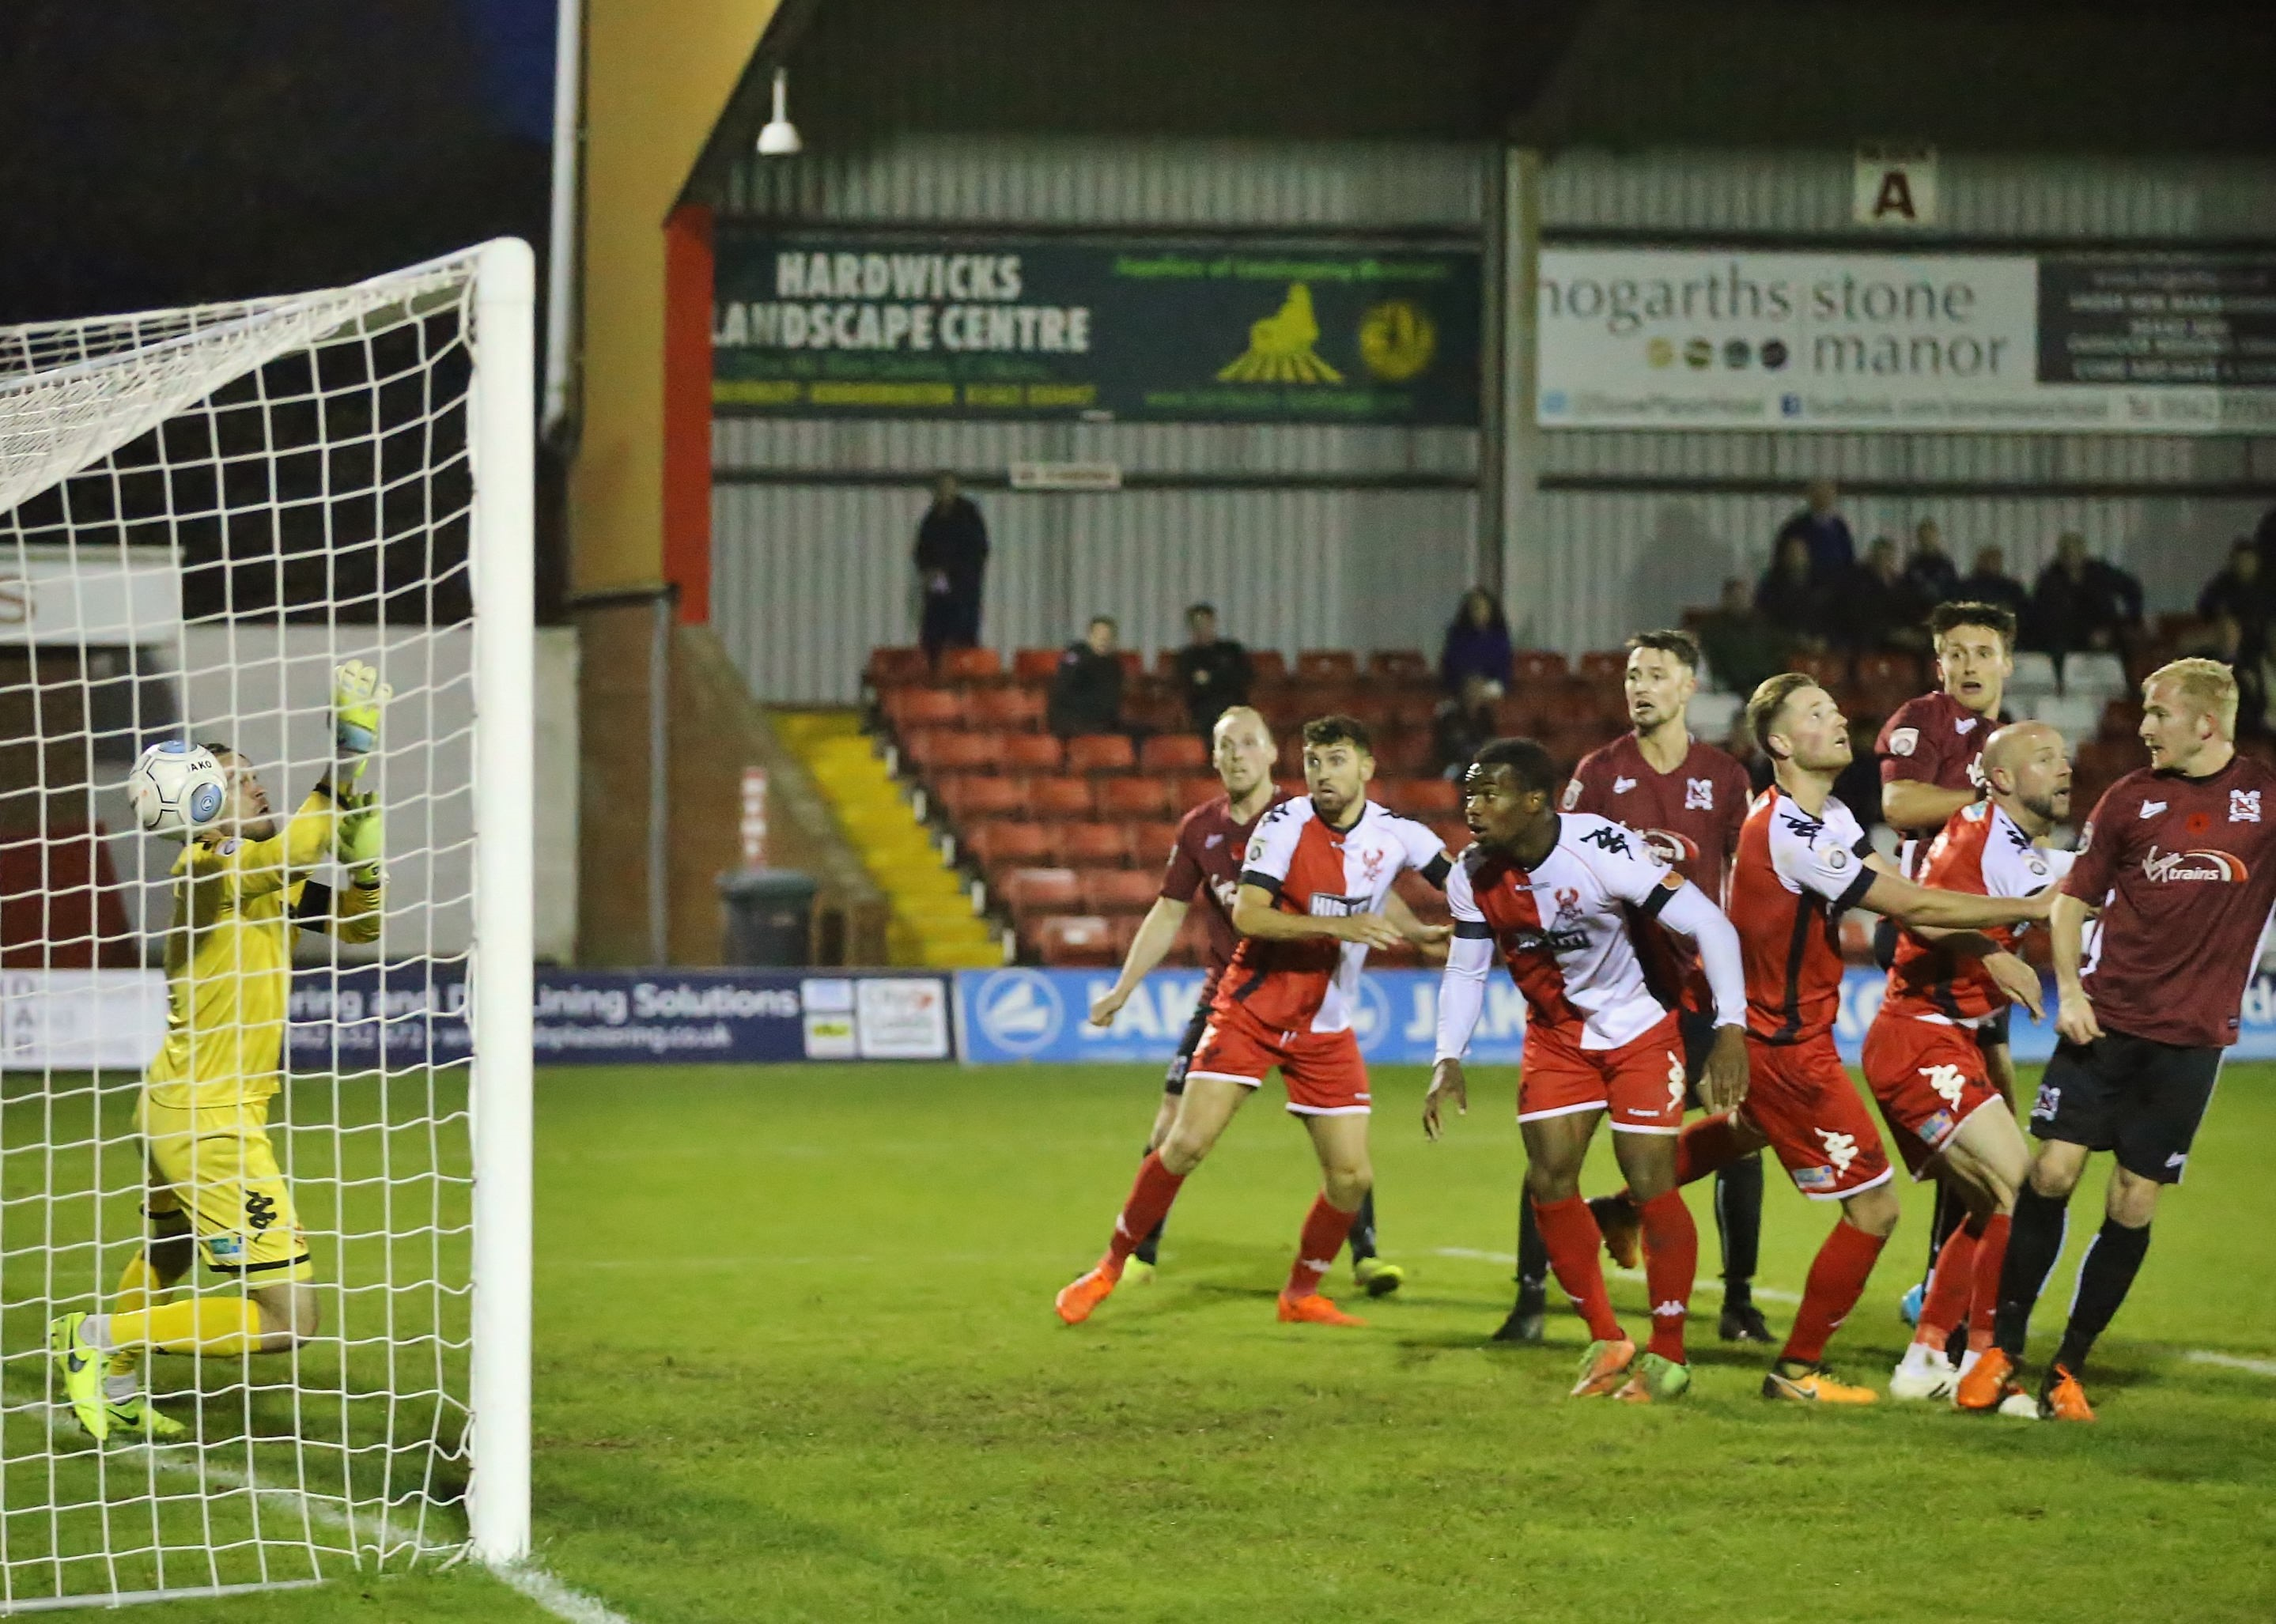 Harvey Saunders scores the equalising goal for Darlington during the Vanarama National League North match between Kidderminster Harriers and Darlington on 11/11/2017. - Credit: Will Kilpatrick Photography